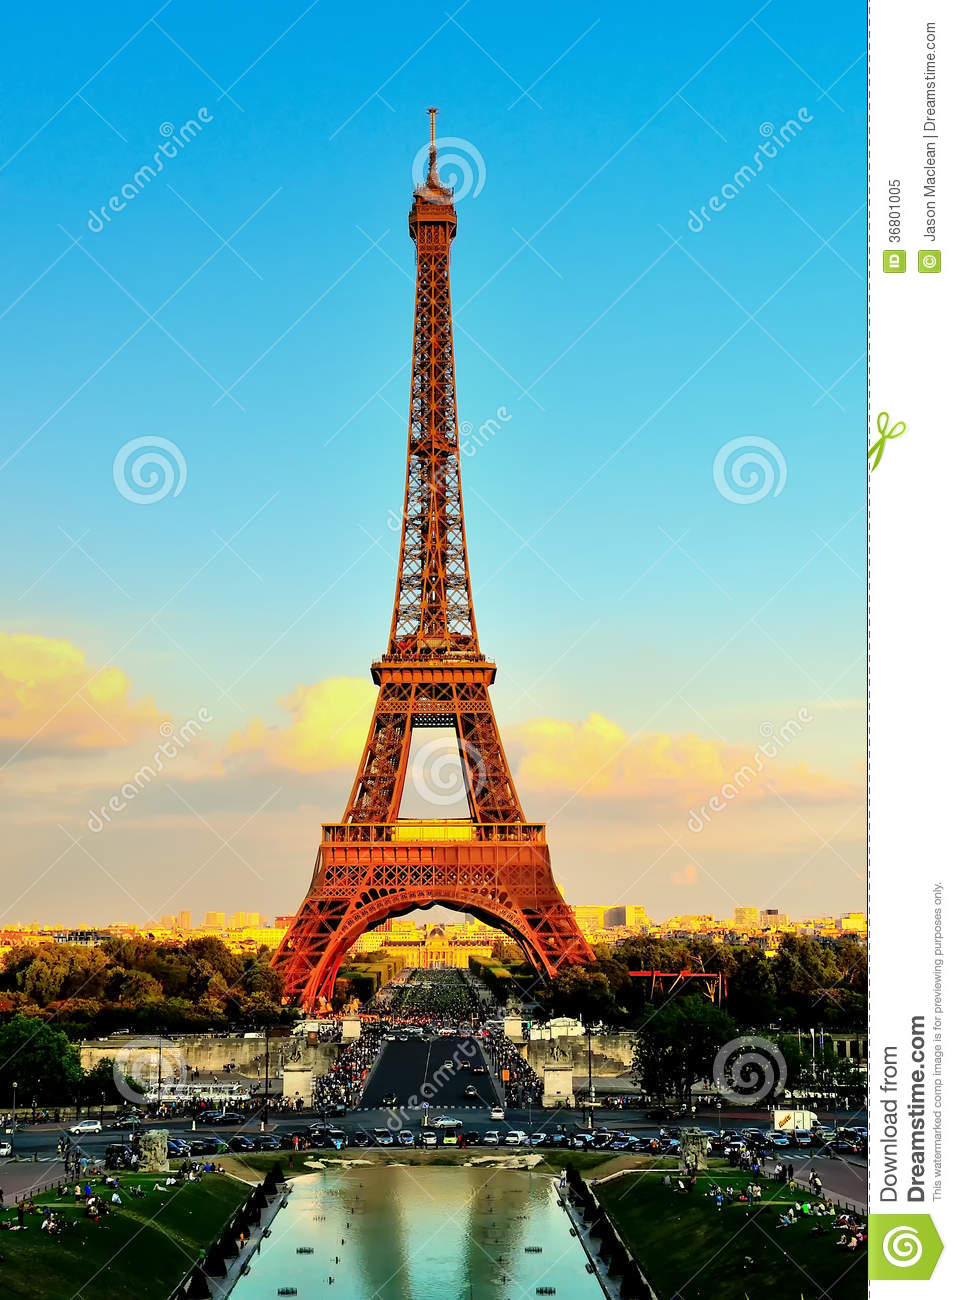 Eiffel Tower At Sunset From Trocadero Palais De Chaillot Royalty.